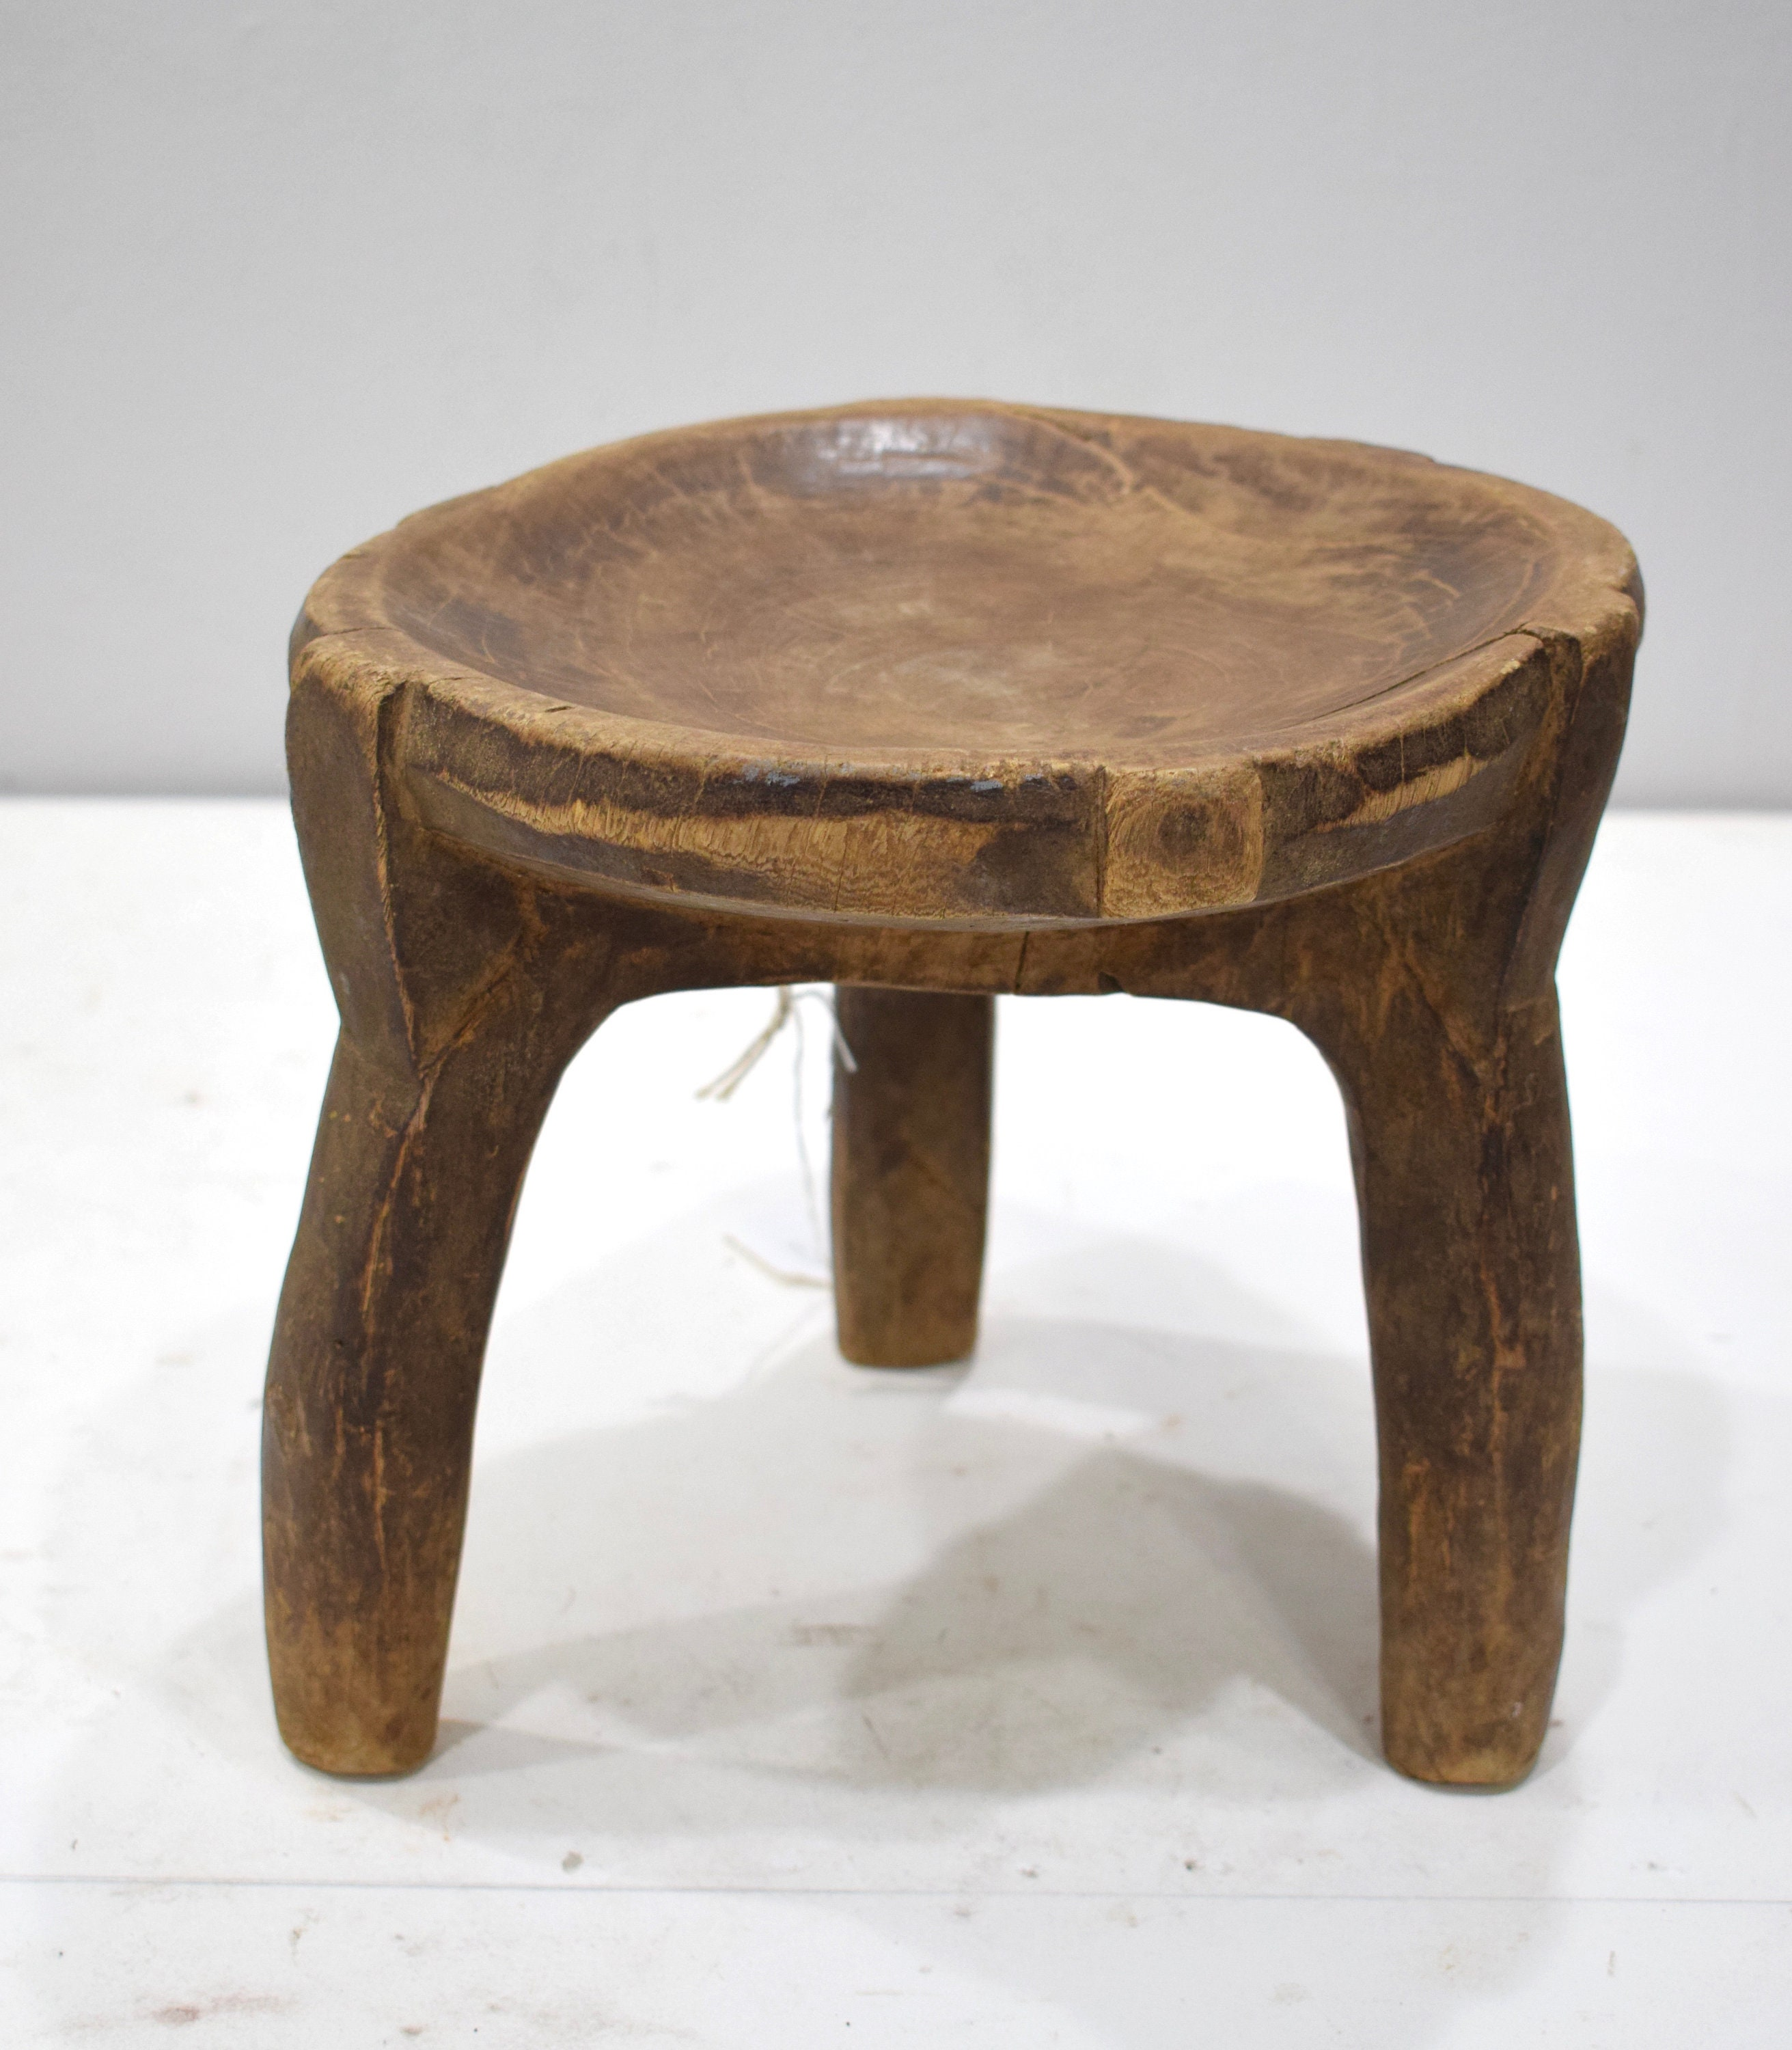 Superb African Stool Gogo Tribe Tanzania Carved Wood Prestige Stool Andrewgaddart Wooden Chair Designs For Living Room Andrewgaddartcom